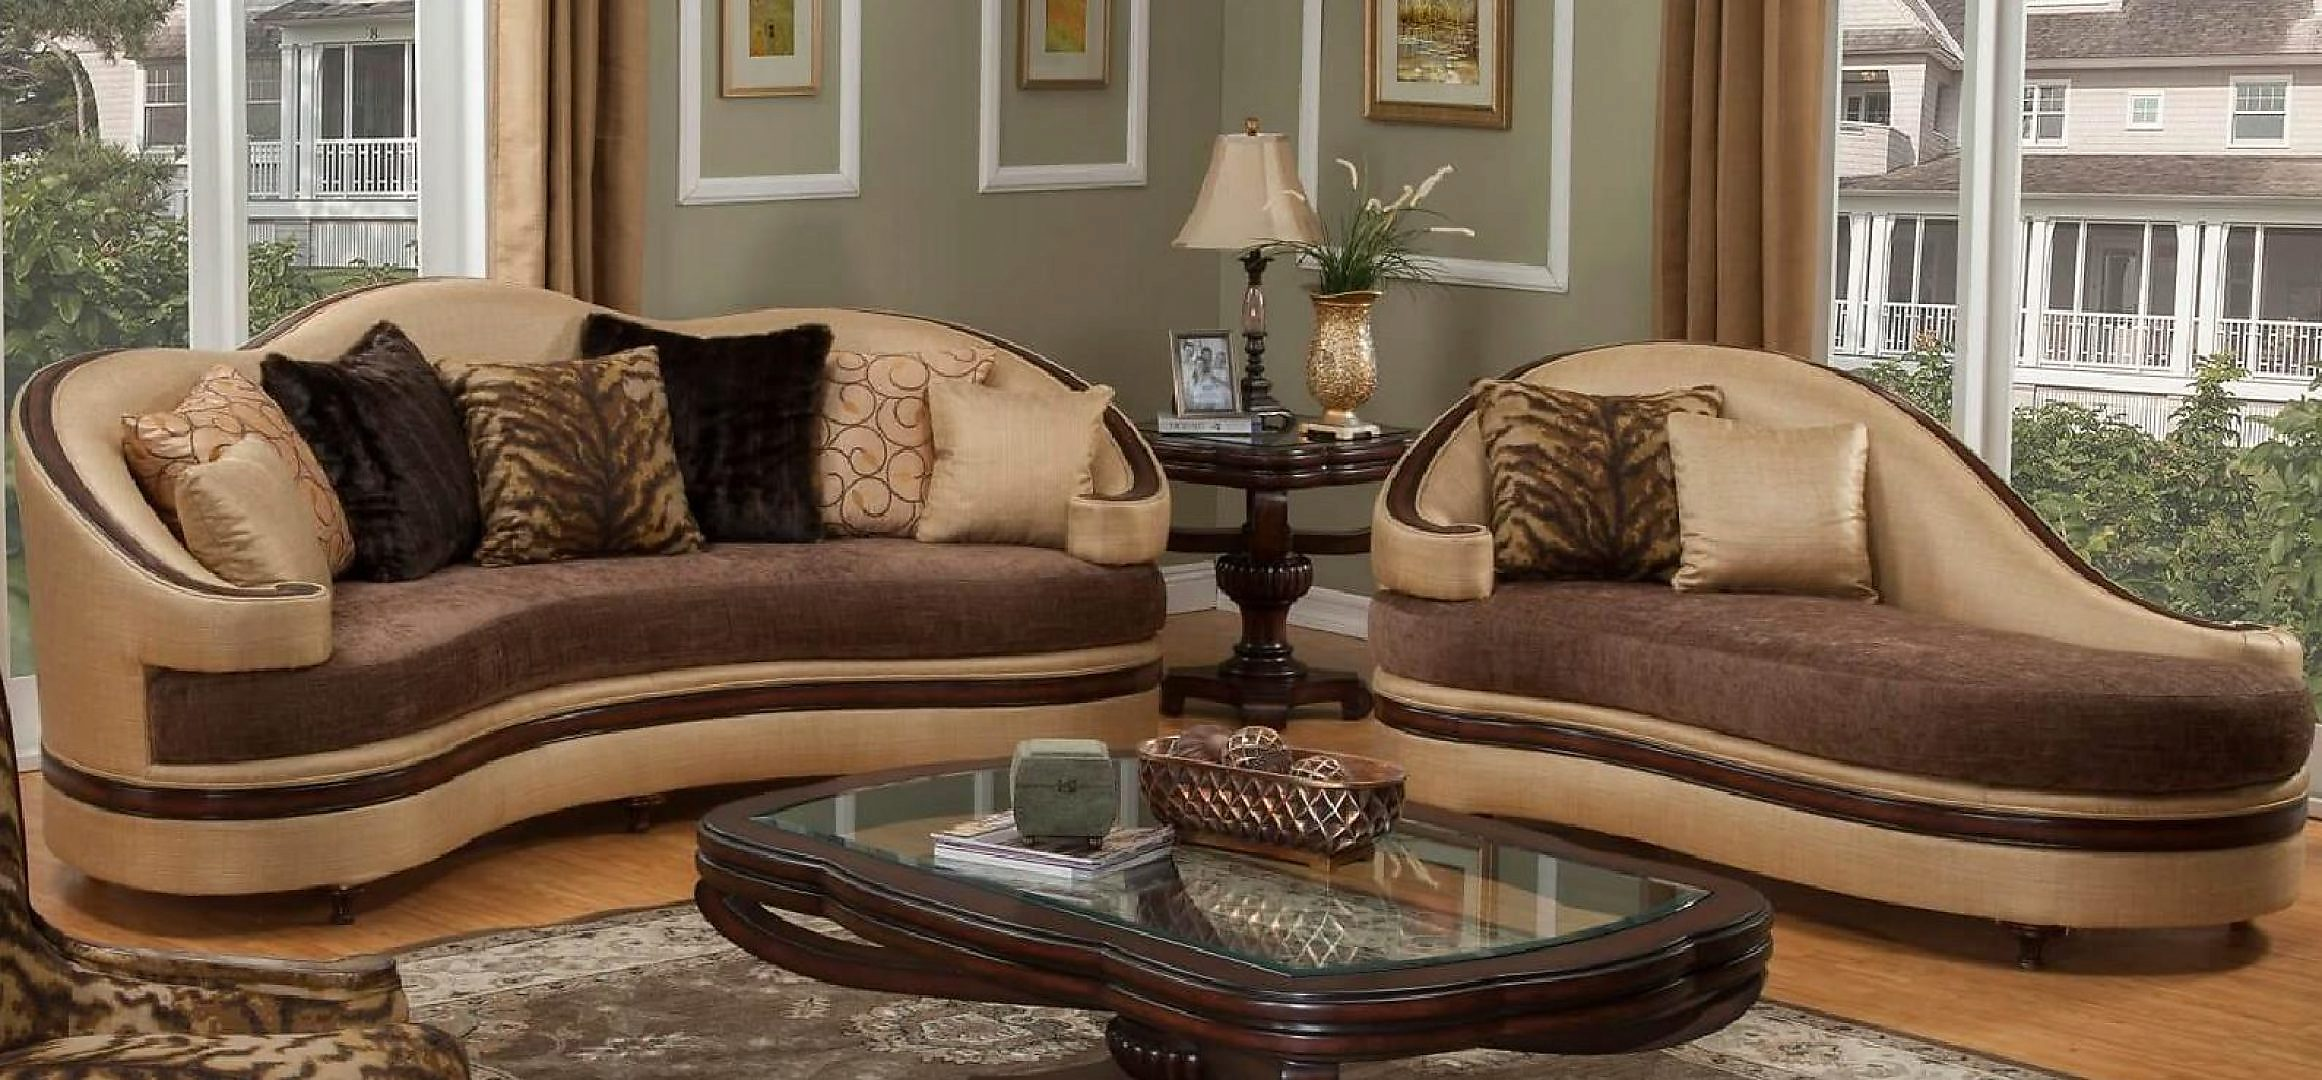 Bennetti Golden Beige Chenille Dark Brown Wood Sofa Chaise Set 2 Pcs EMMA BR Sofa Chaise Traditional